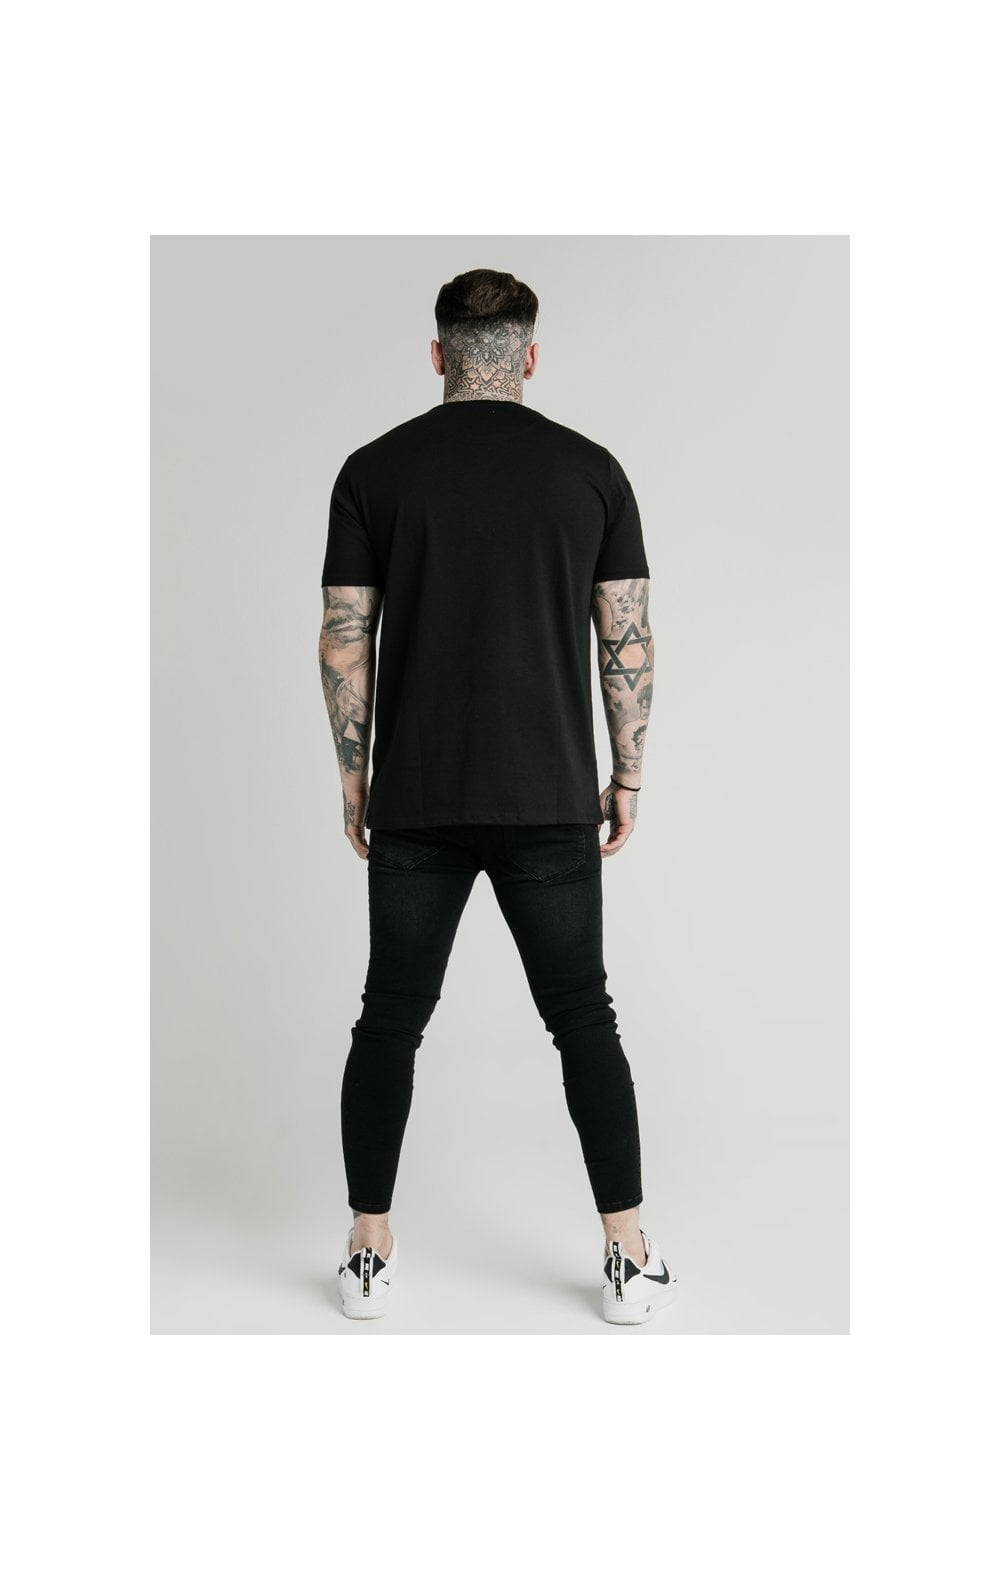 Load image into Gallery viewer, SikSilk x FaZe Apex Standard Square Hem Tee - Black (6)